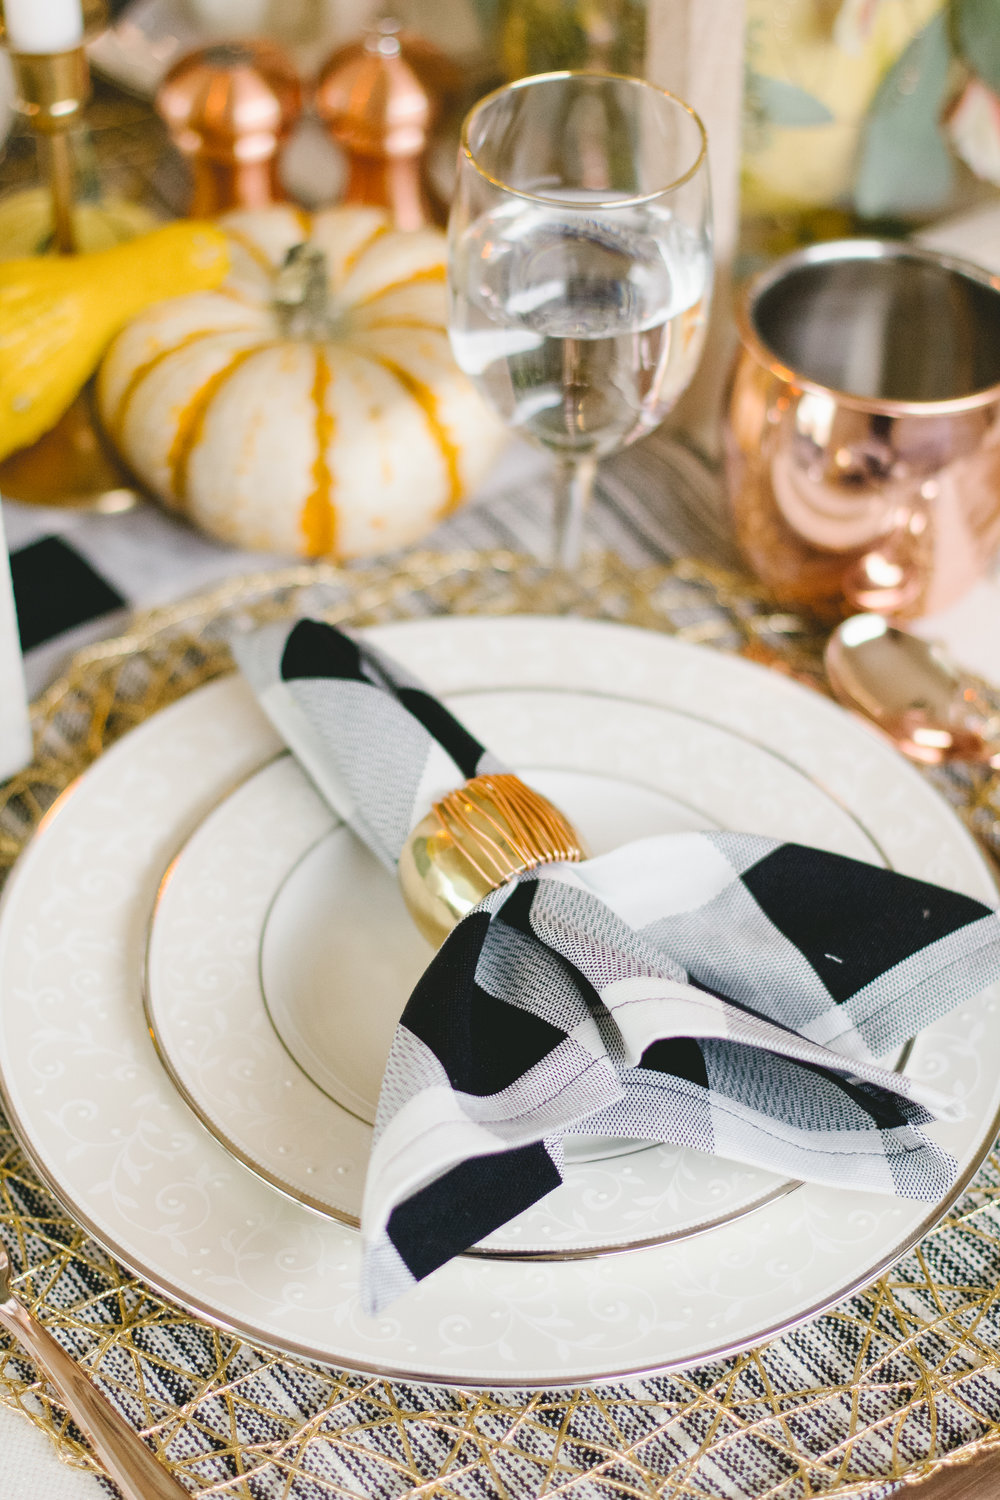 Check out this napkin tutorial over at Dazzling Hospitality!